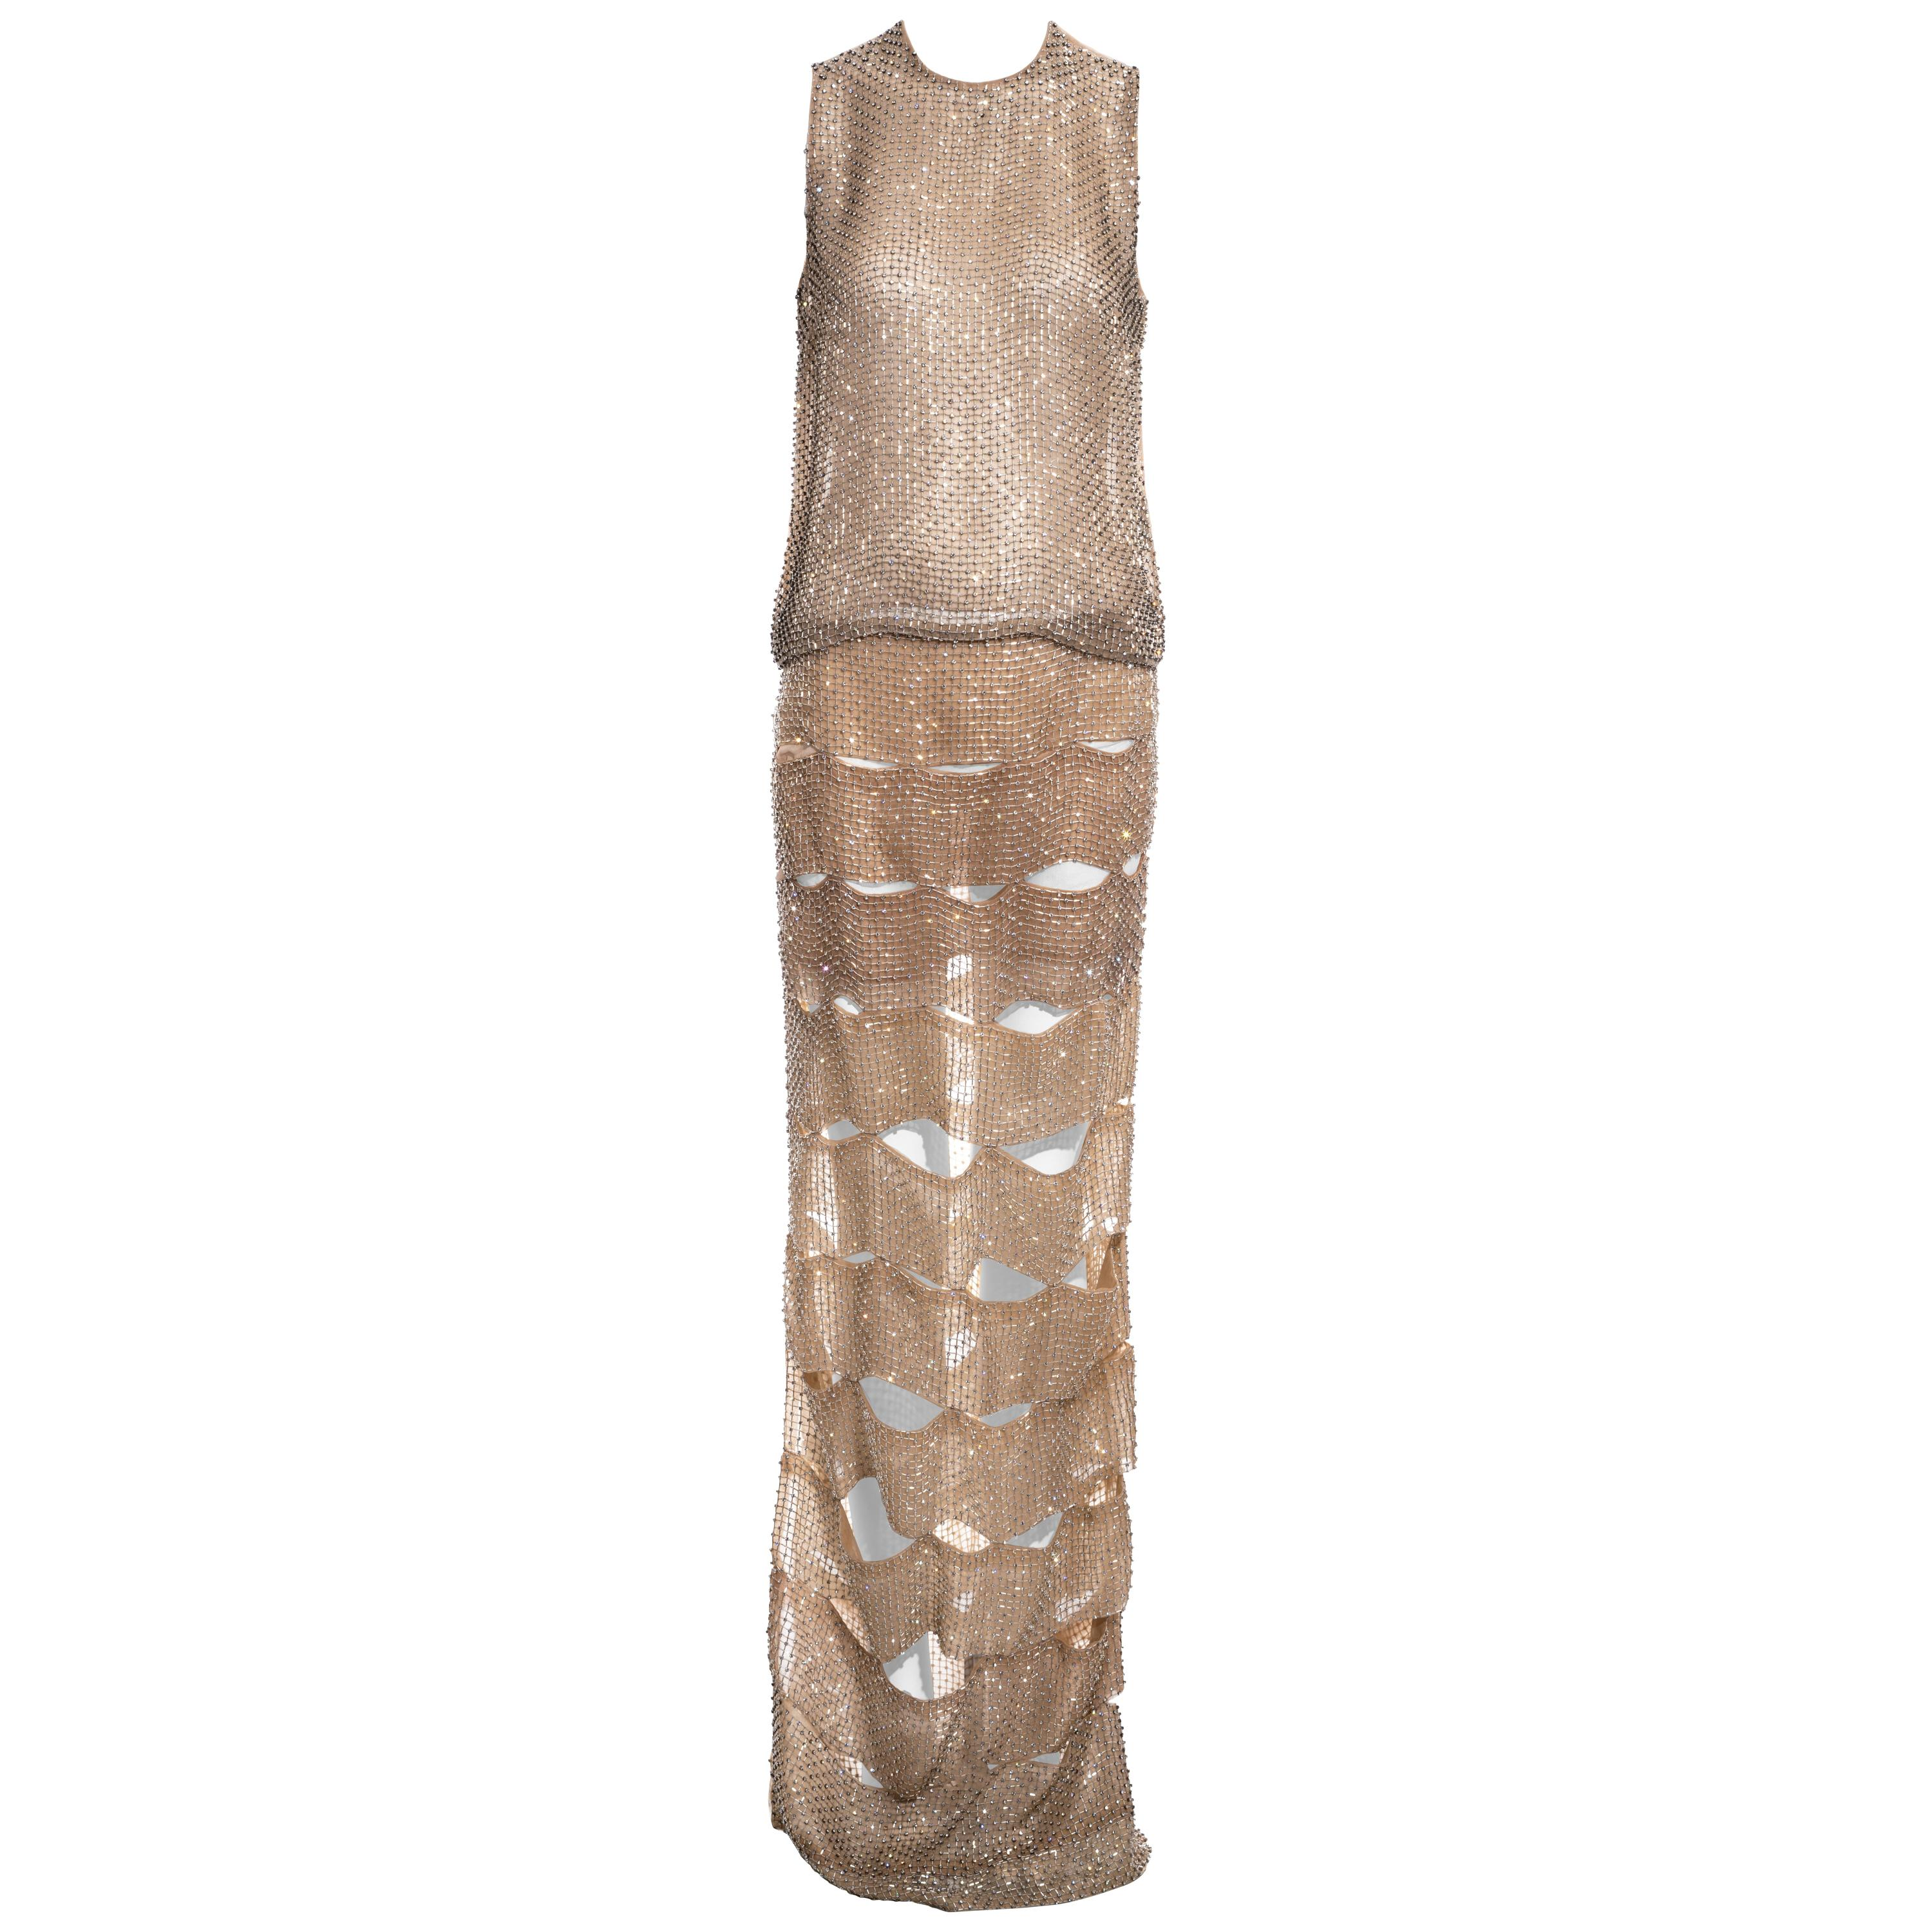 Tom Ford nude silk organza evening dress in a lattice of glass beads, ss 2013